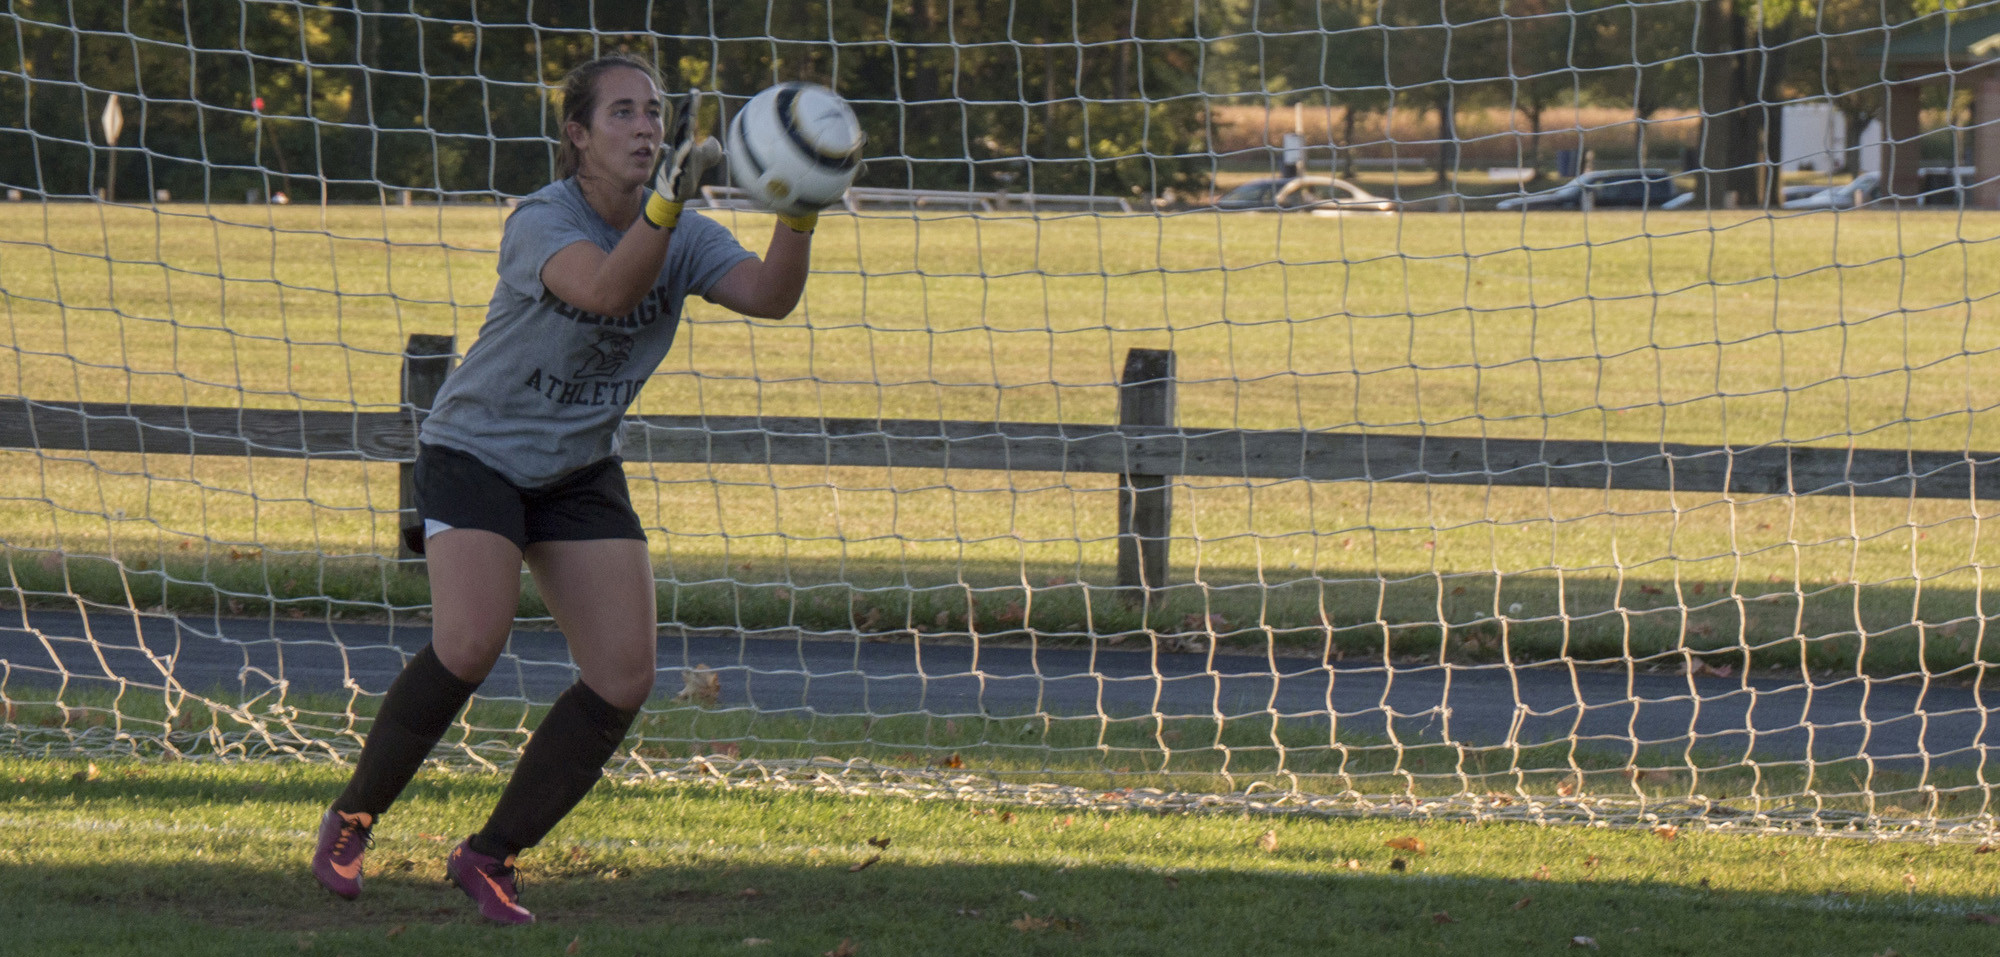 Senior women s soccer goalkeeper reflects on her career - The Brown ... b908c7b82b